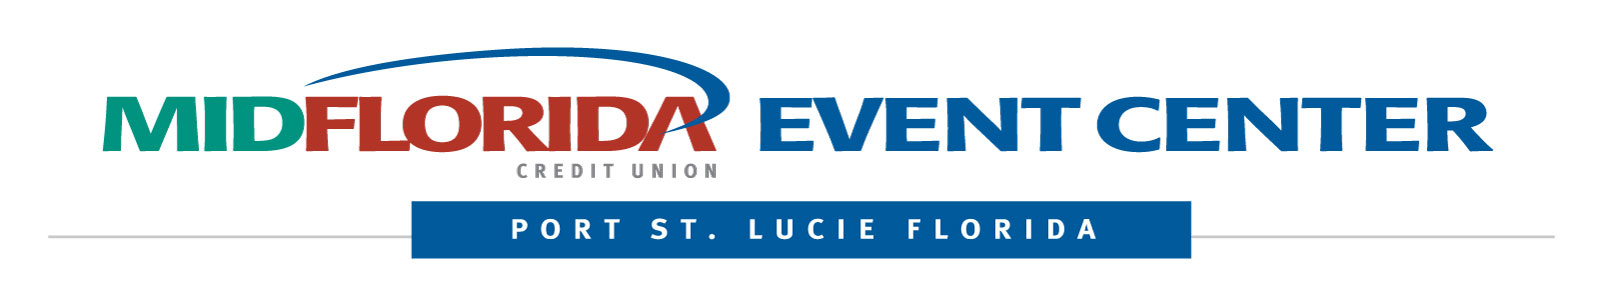 MIDFLORIDA Event Center PSL logo horizontal